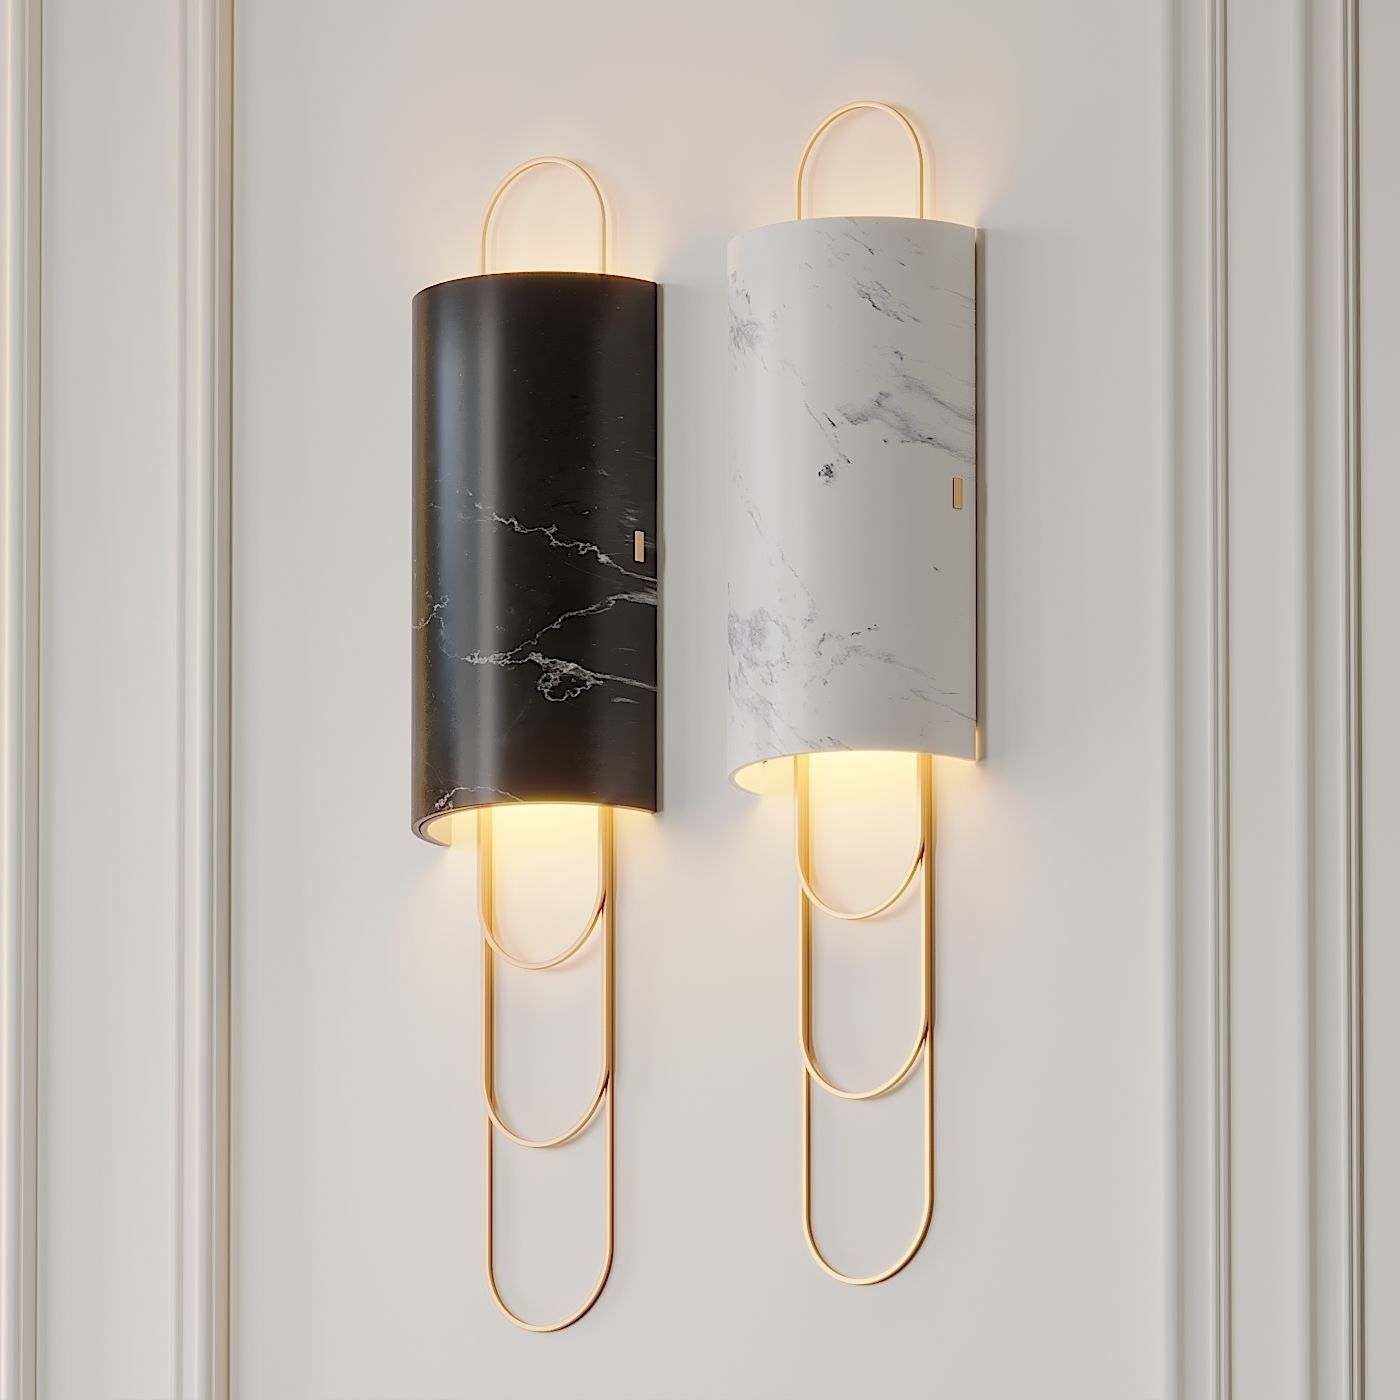 Niagara Wall Sconce by Ginger and Jagger